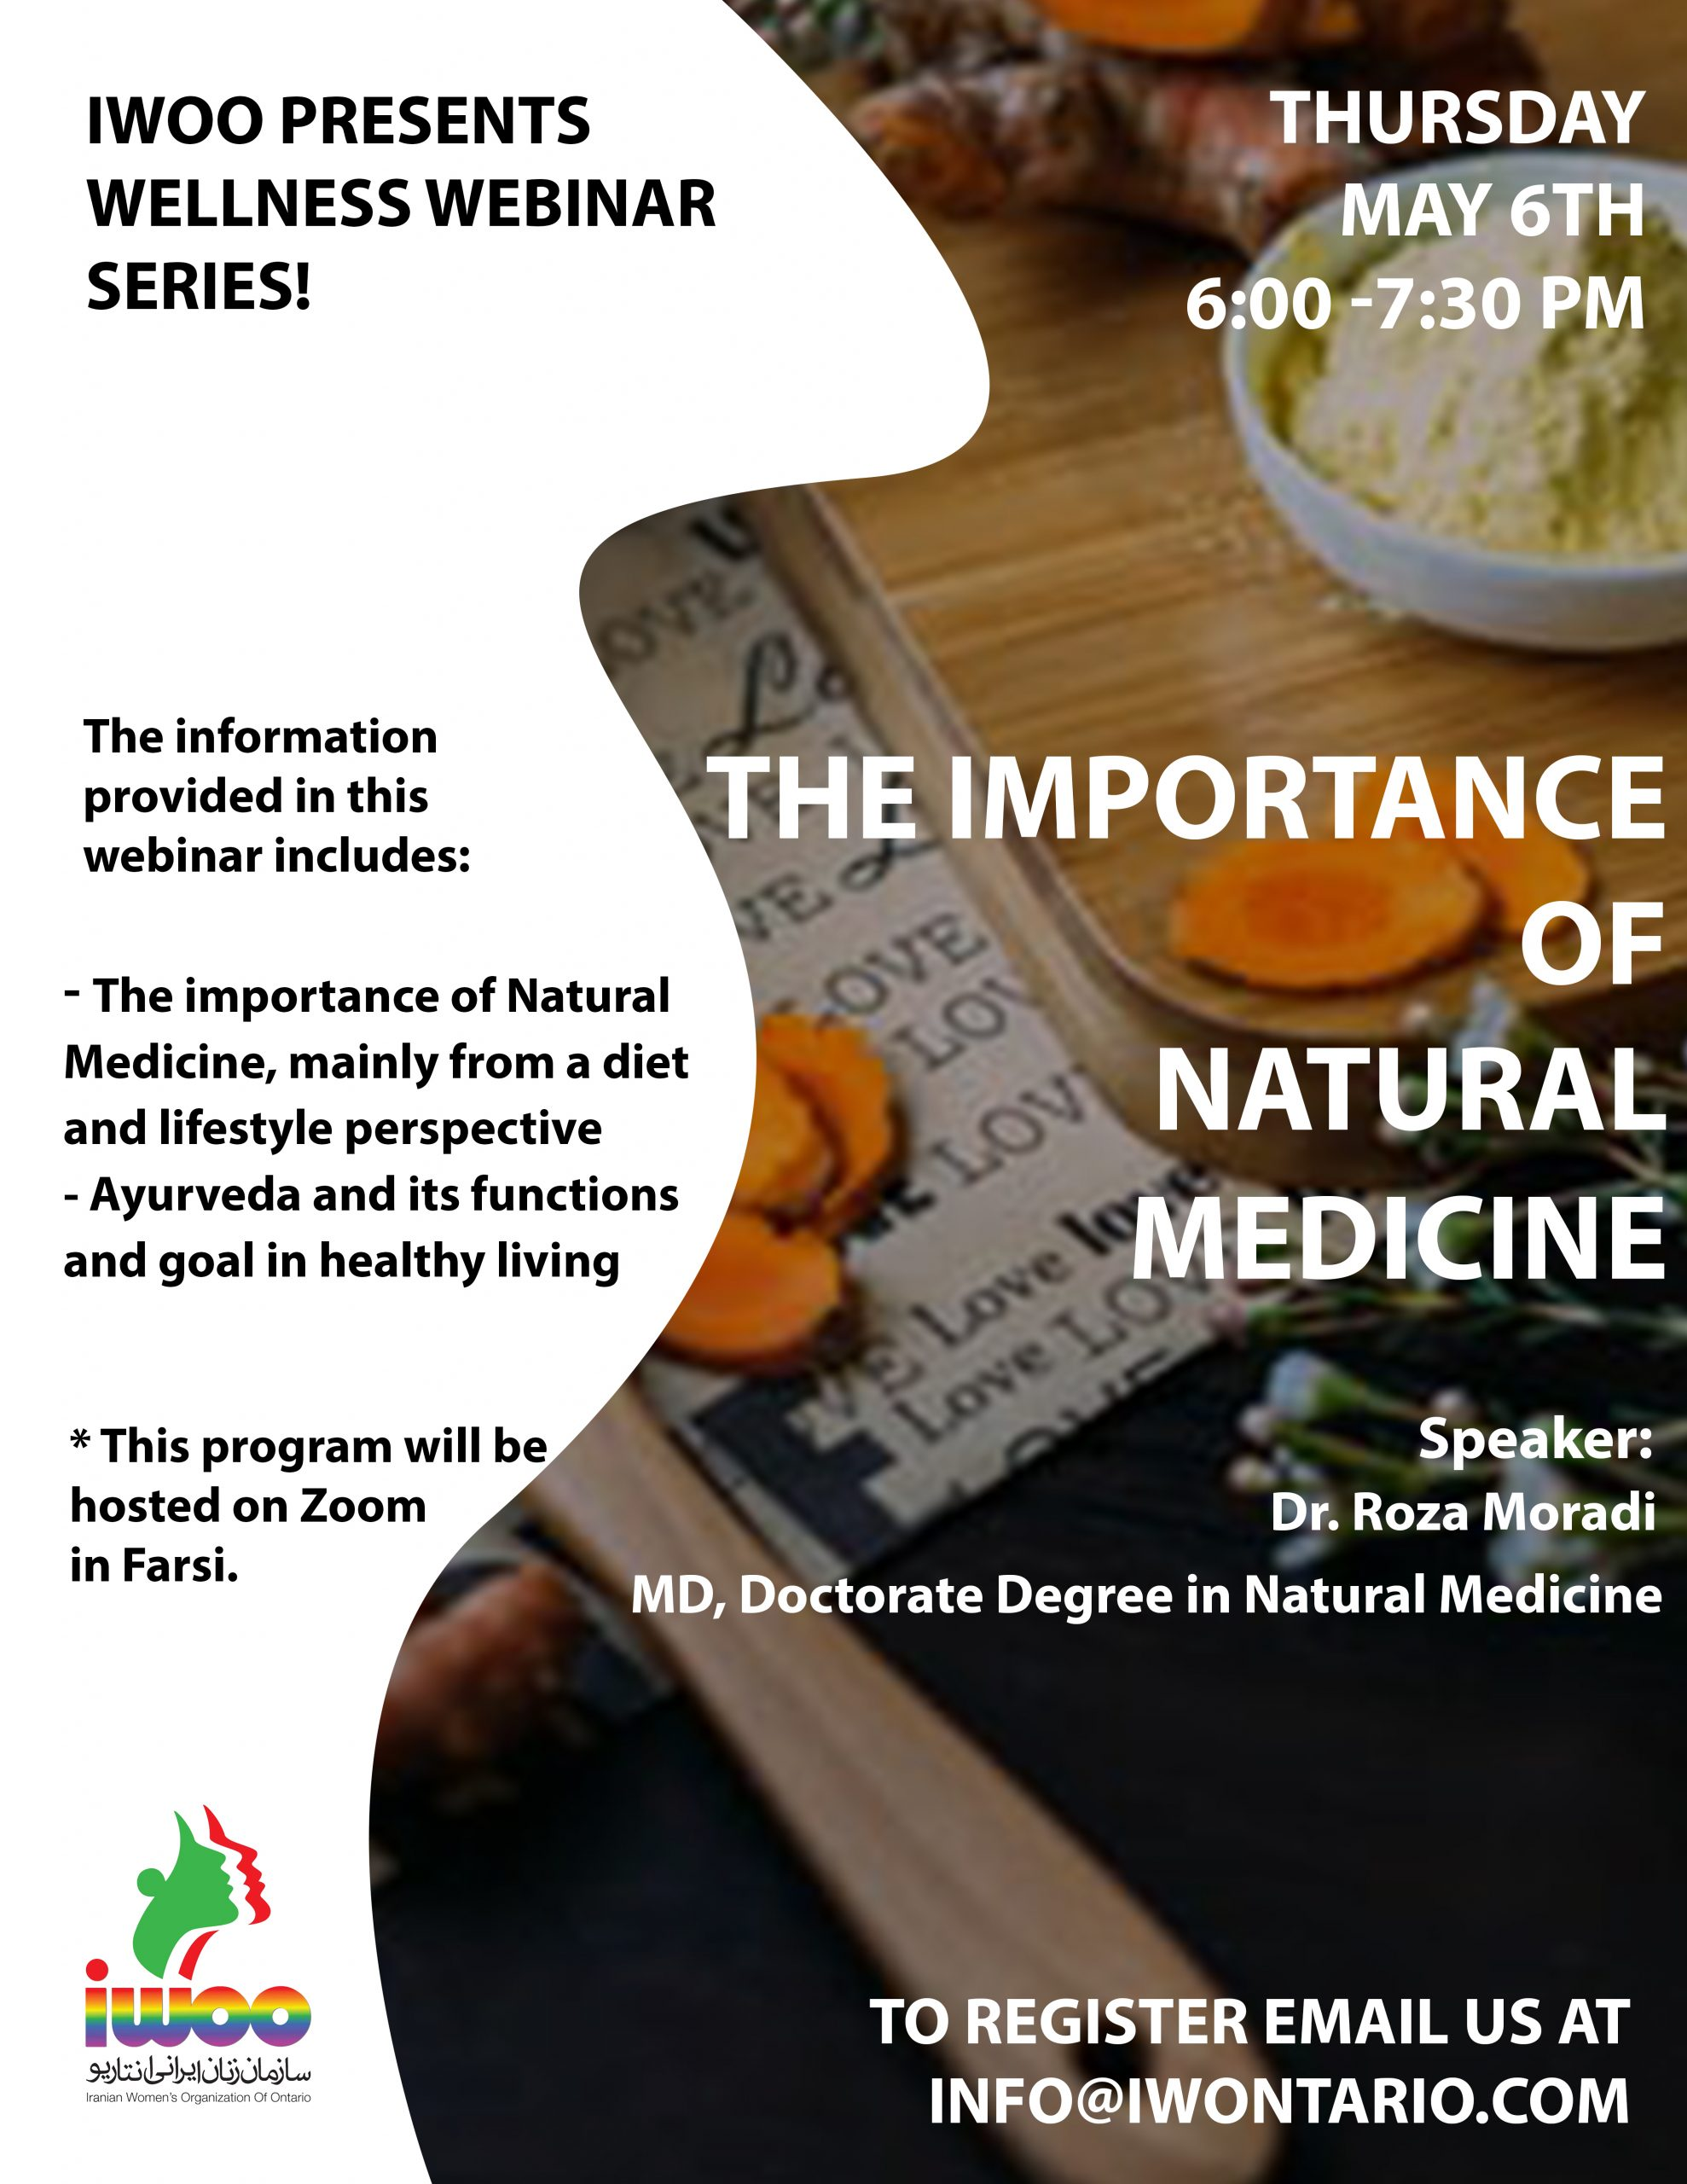 The Importance of Natural Medicine